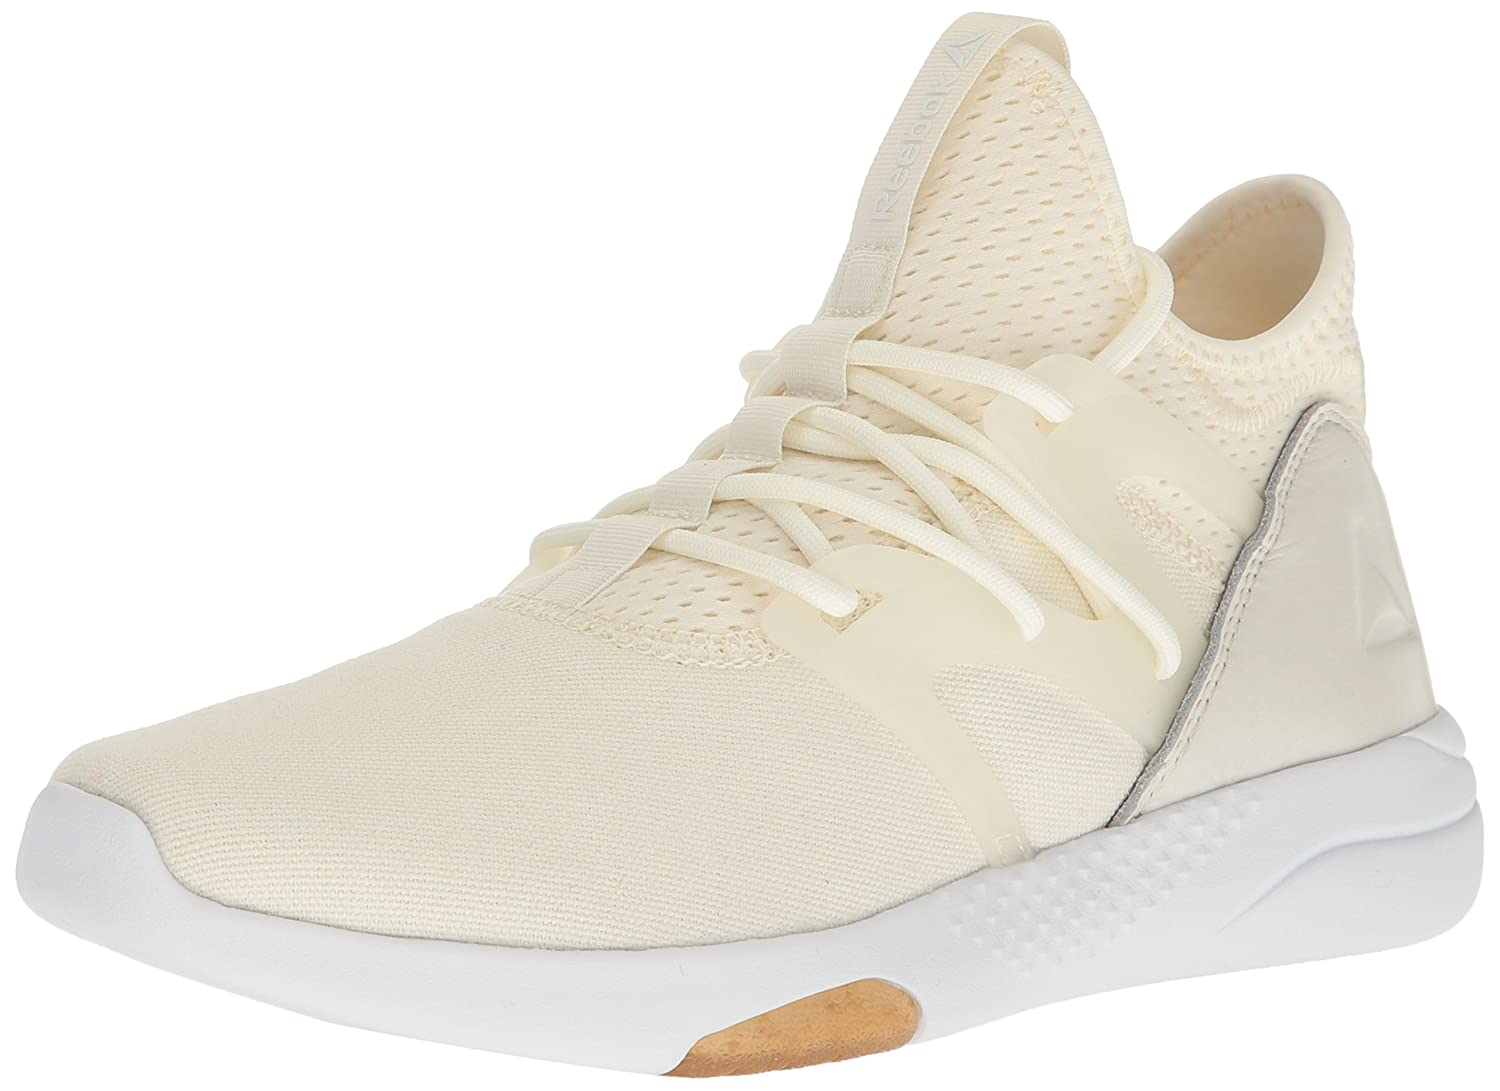 Reebok Women's Hayasu Training Shoe B01MUVFXEA 6.5 B(M) US|Chalk/White/Gum/Amber Gold/Classic White